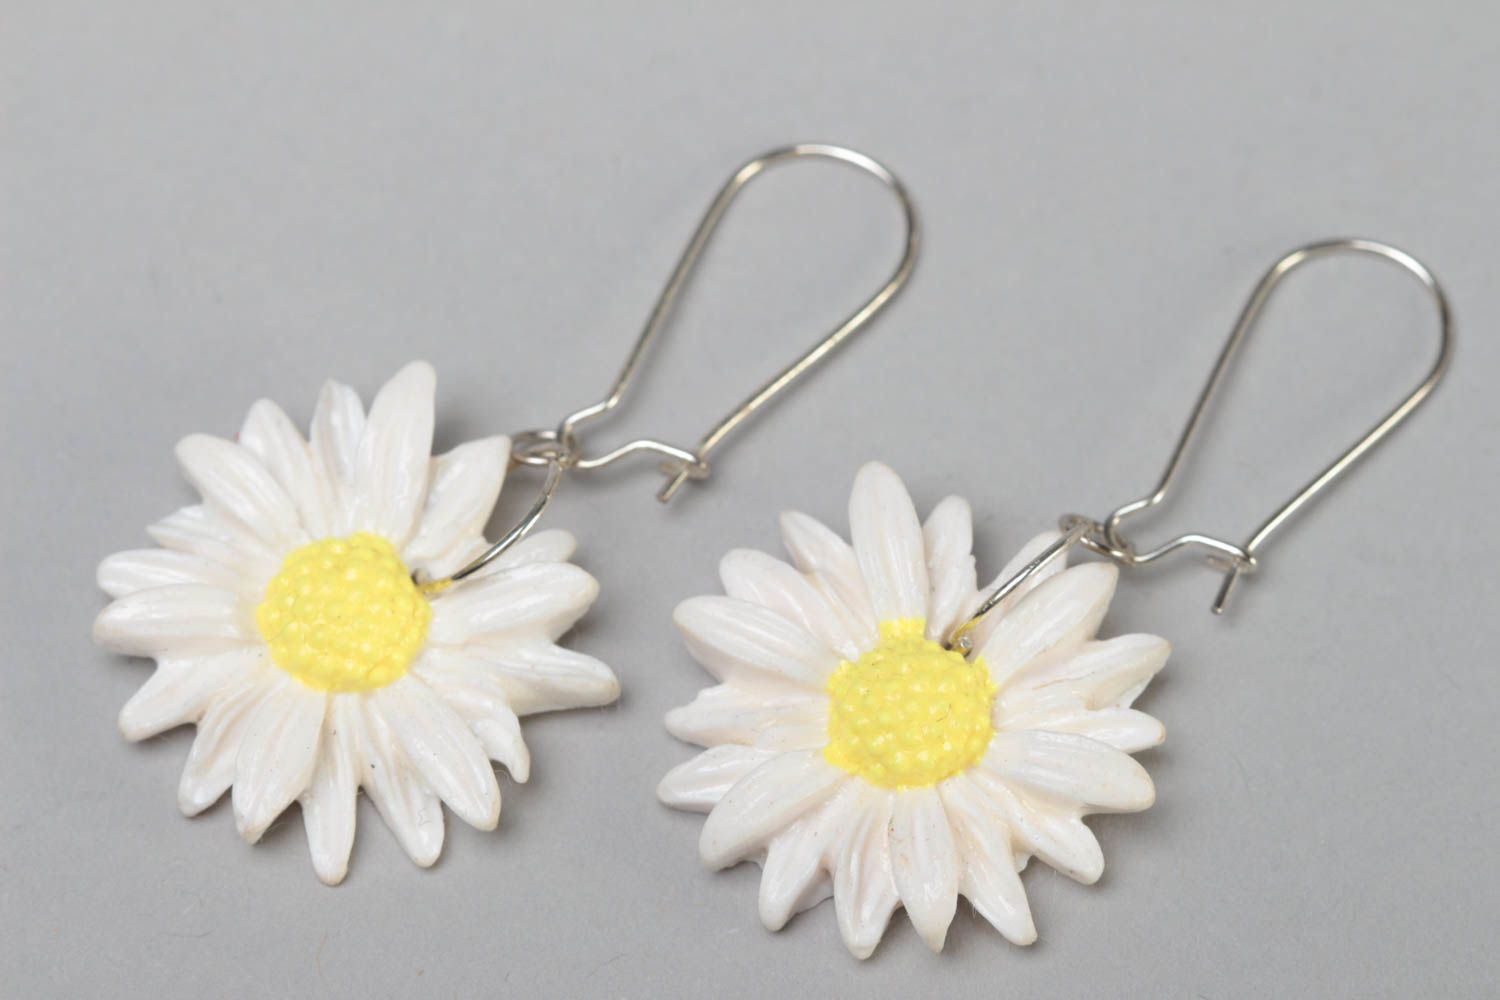 Handmade designer polymer clay dangling earrings with white chamomile flowers photo 2